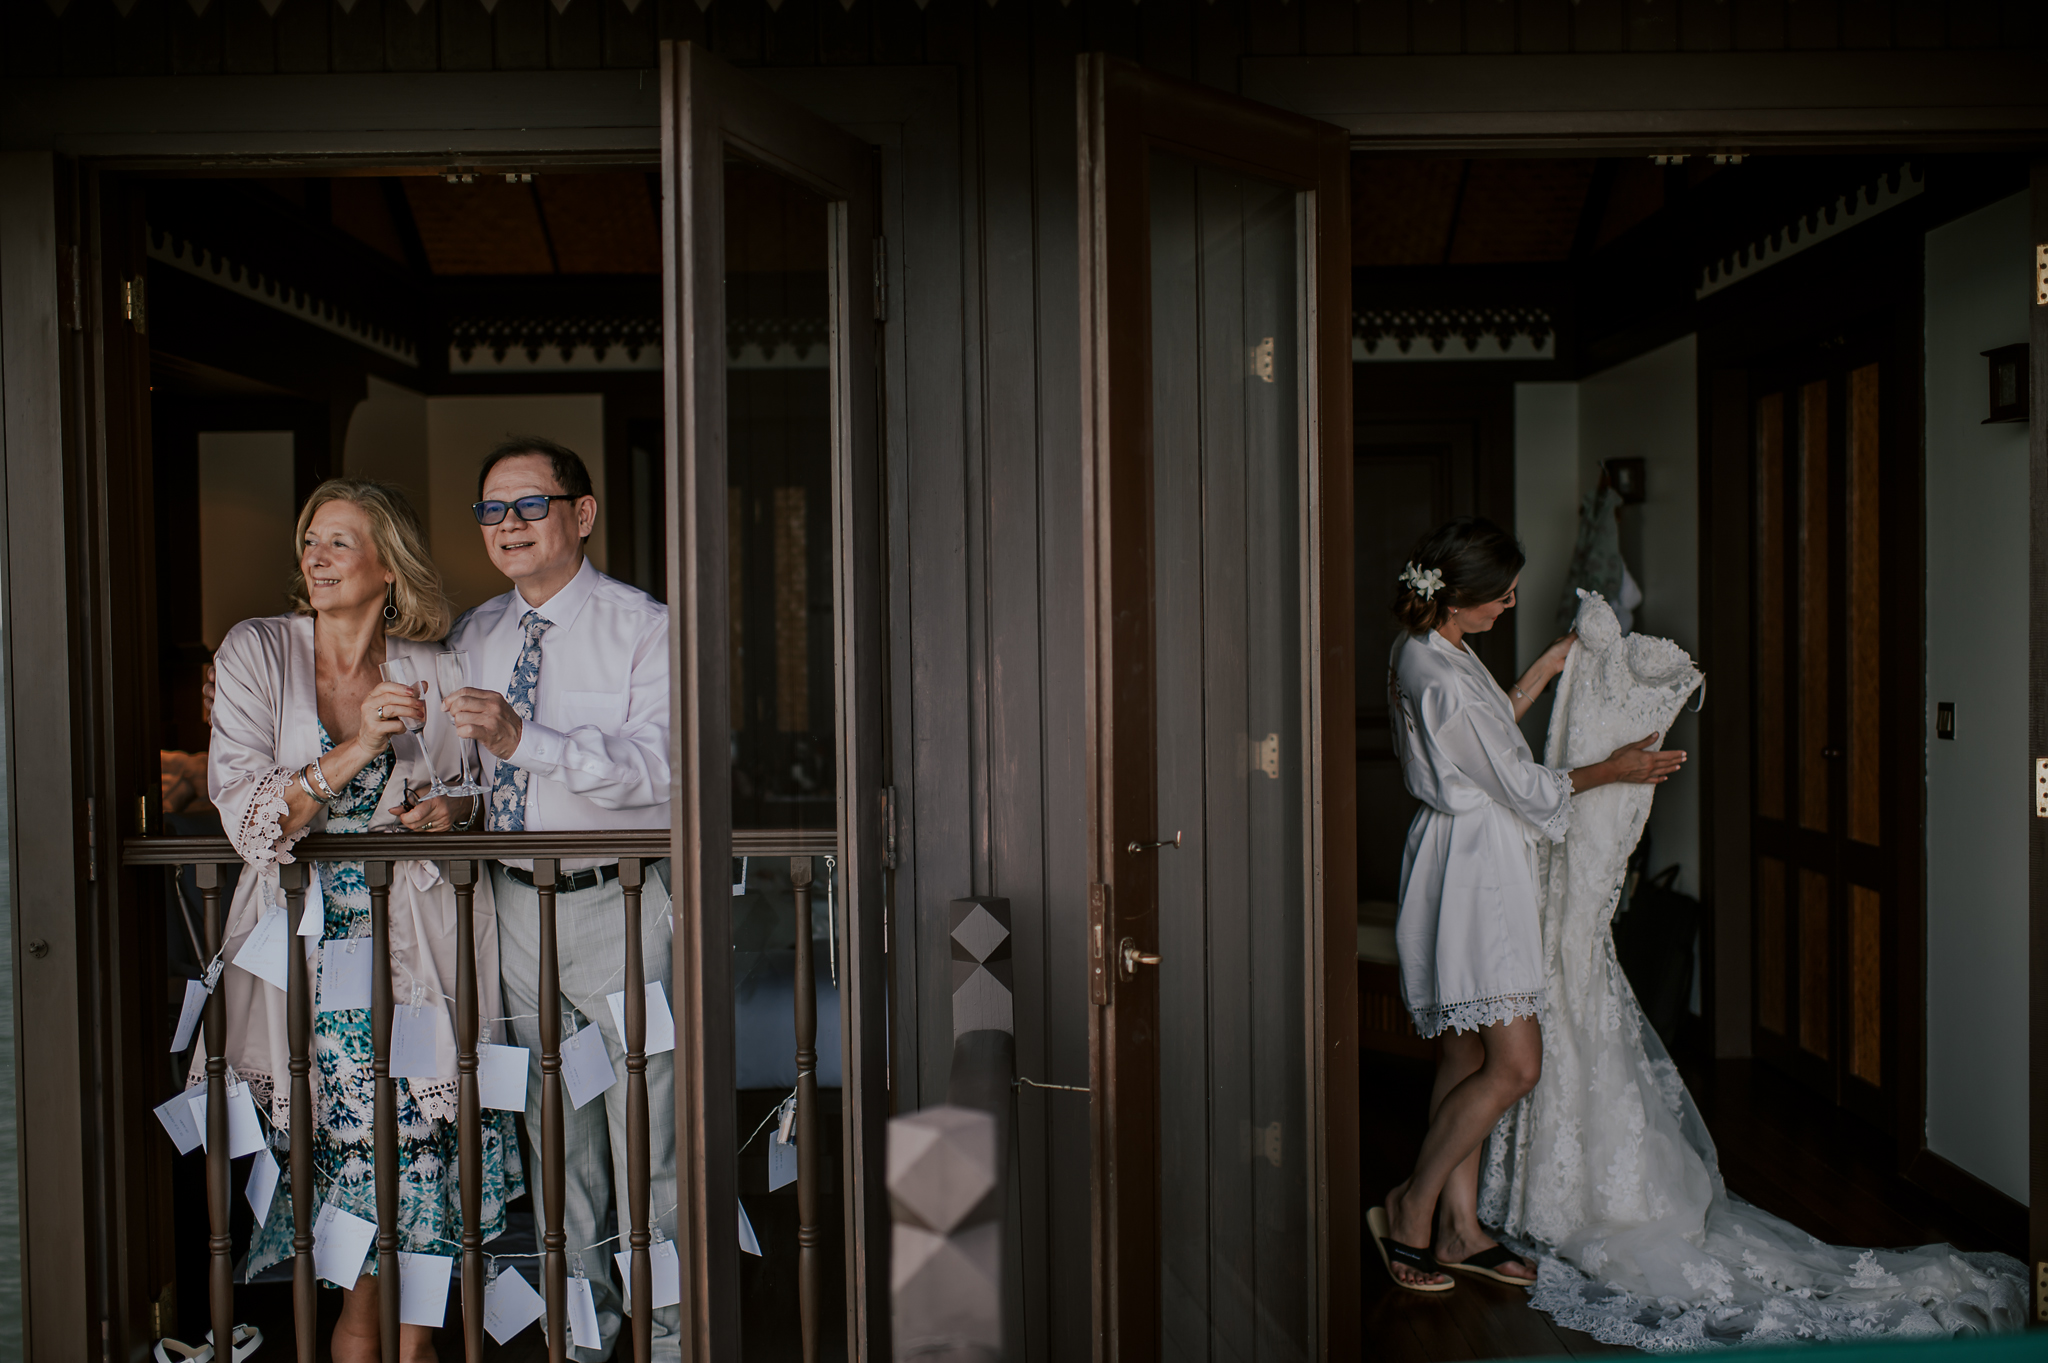 Bride gets ready while parents wait on balcony - photo by Edwin Tan Photography